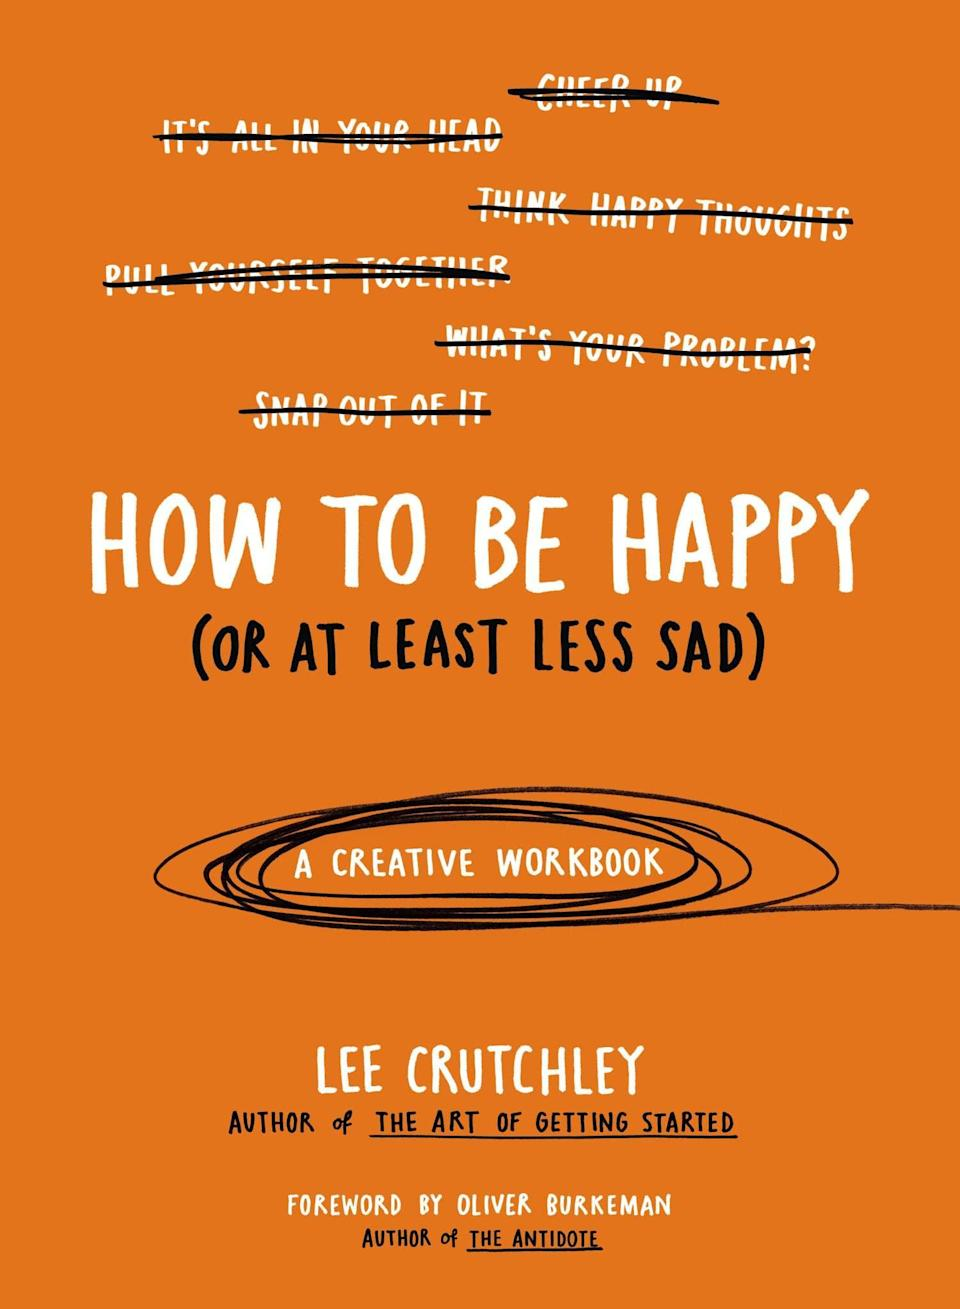 <p>The creative workbook <span>How to be Happy (Or at Least Less Sad)</span> teaches you how to overcome depression or anxiety through a series of encouraging prompts - you'll rediscover life's simple pleasures. </p>